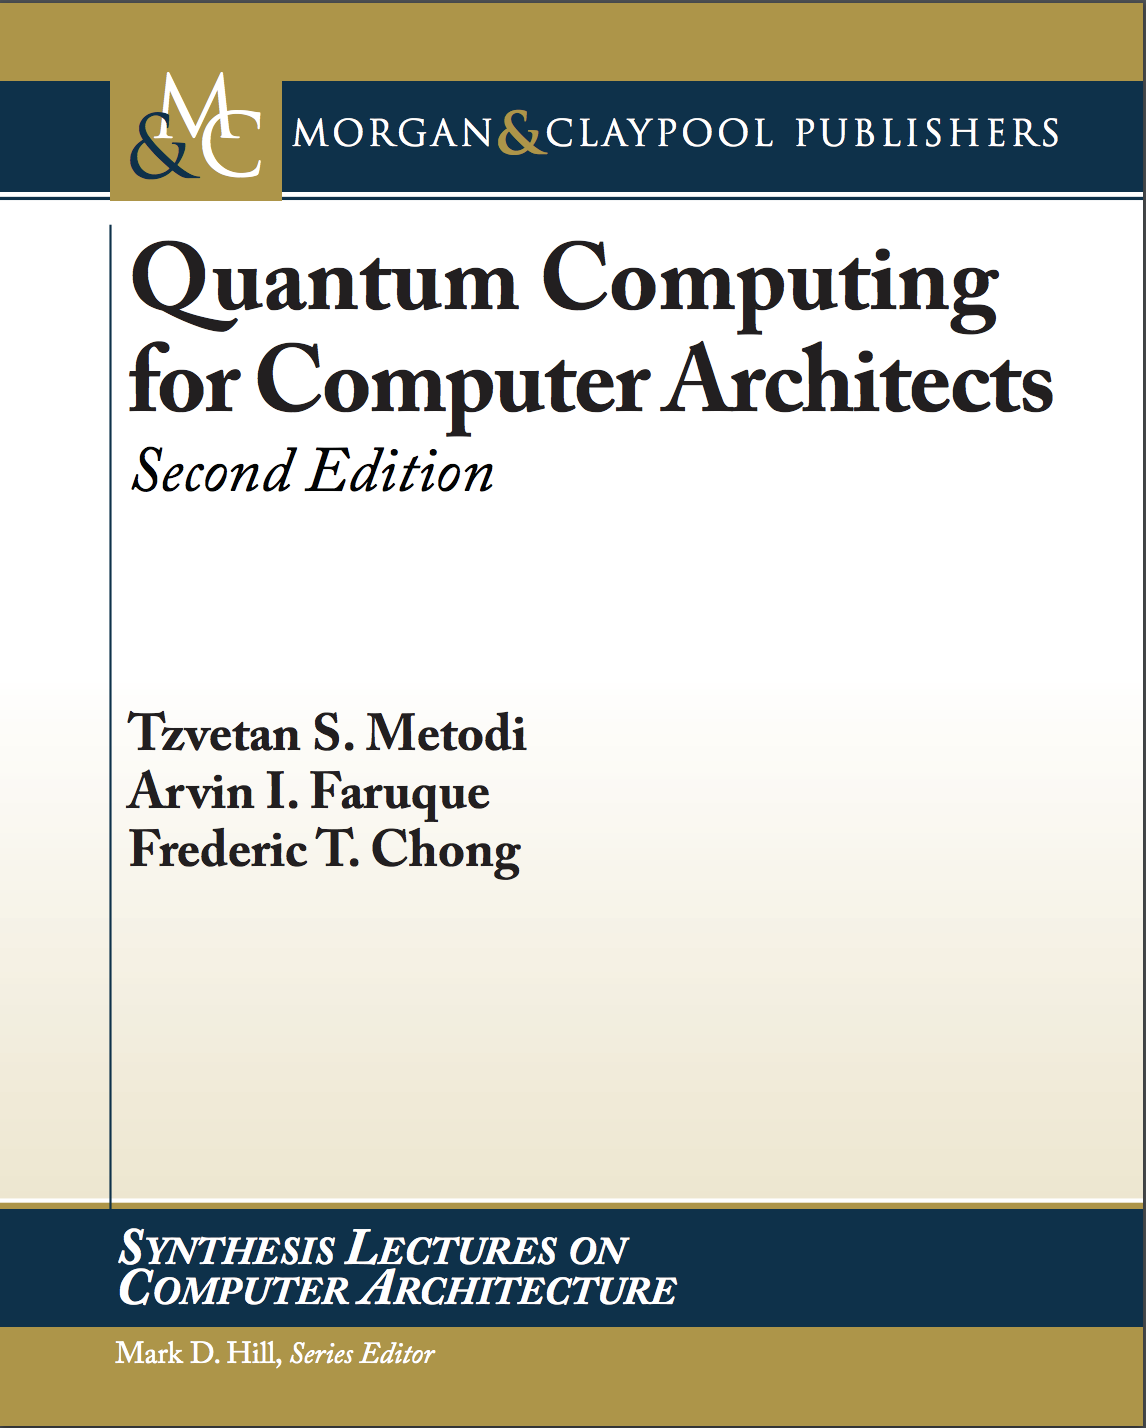 Quantum Computing for Computer Architects, 2nd Ed